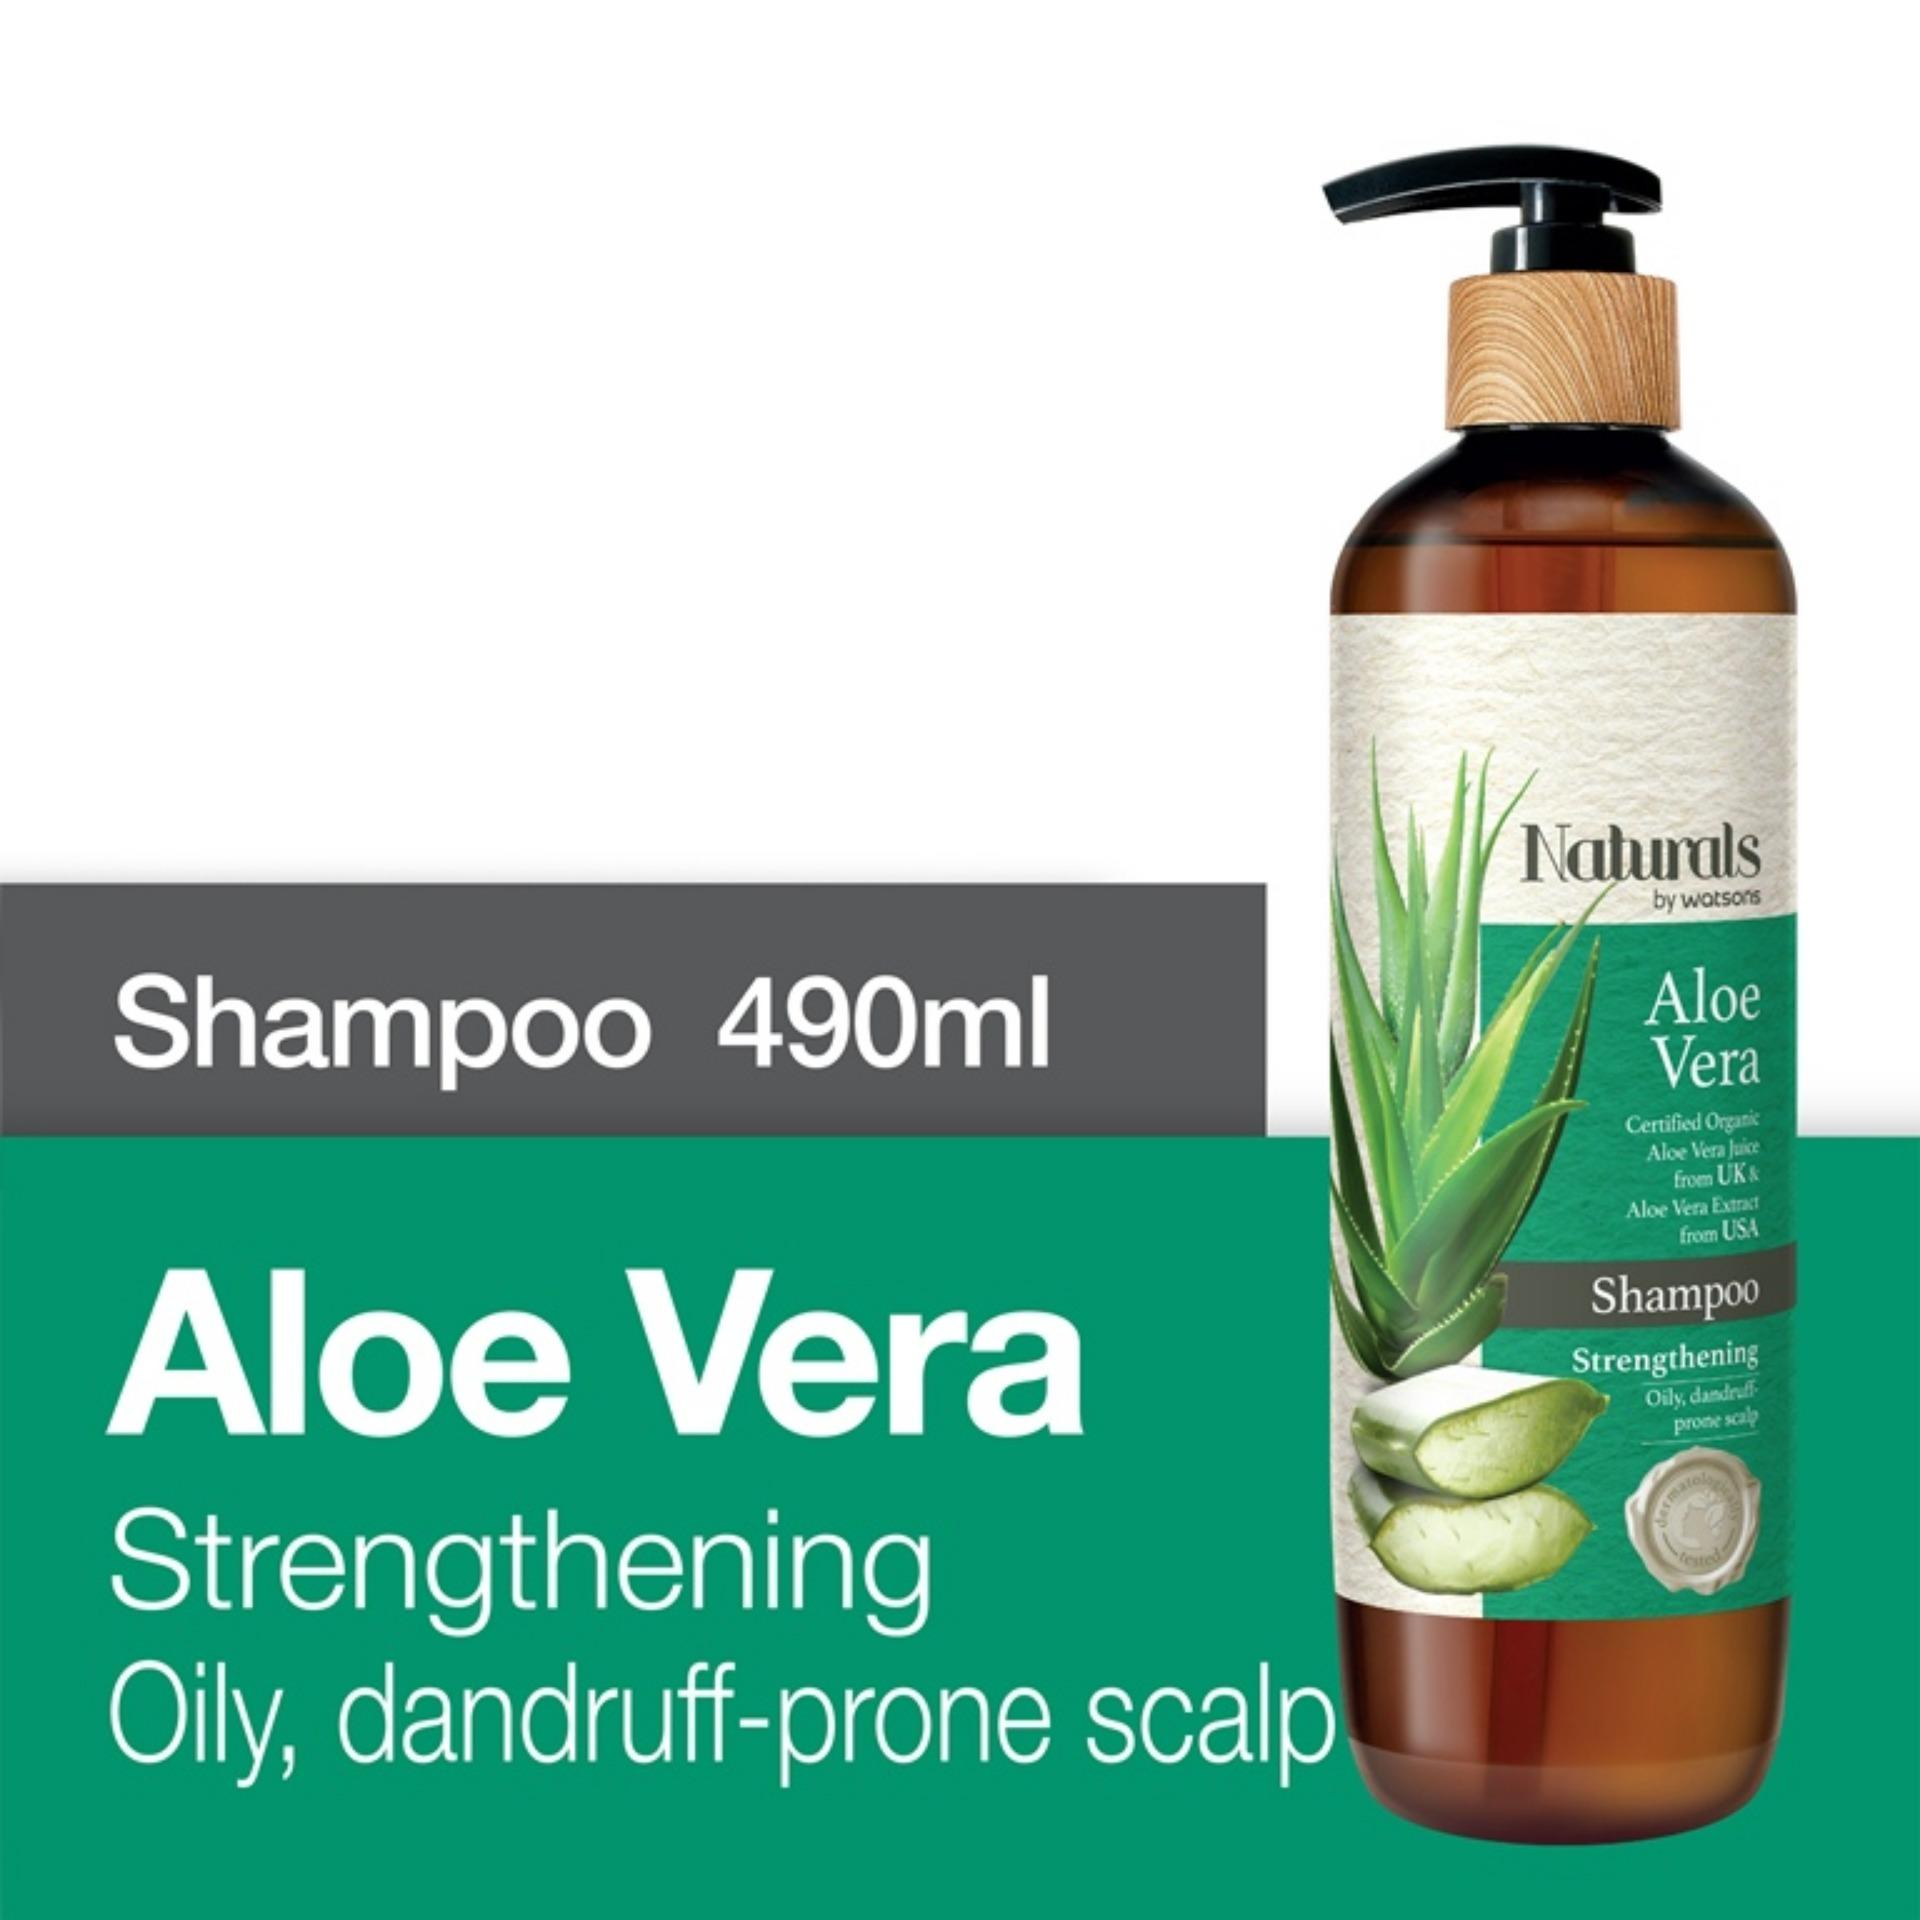 Hair Conditioners Brands Care On Sale Prices Selsun 7 Herbal Anti Dandruff Shampoo 120ml Naturals By Watsons Aloe Vera 490ml